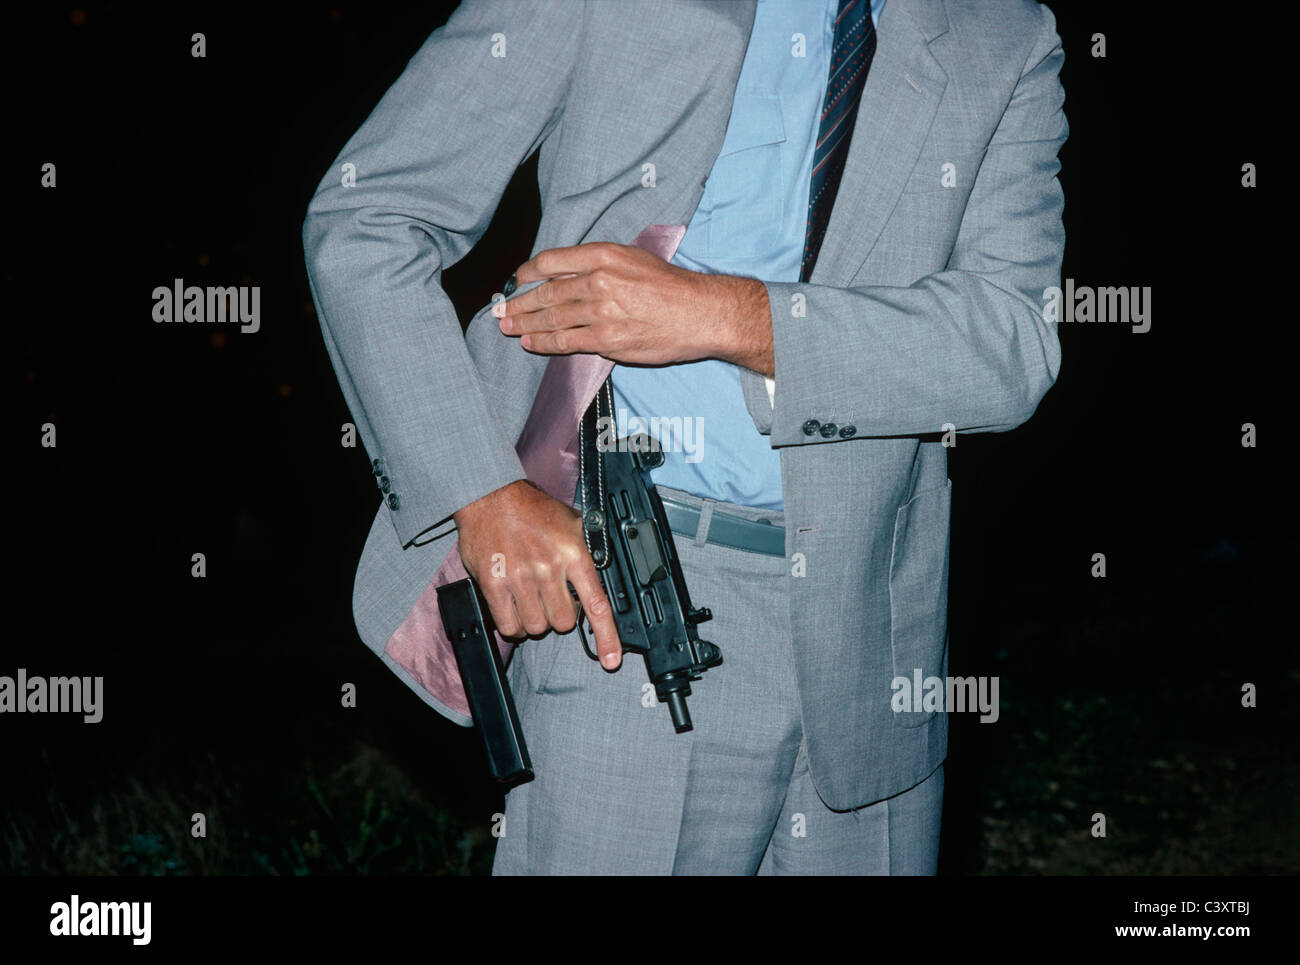 Israeli Secret Service Agent Draws An Uzi Pistol From His Shoulder Stock Photo Alamy